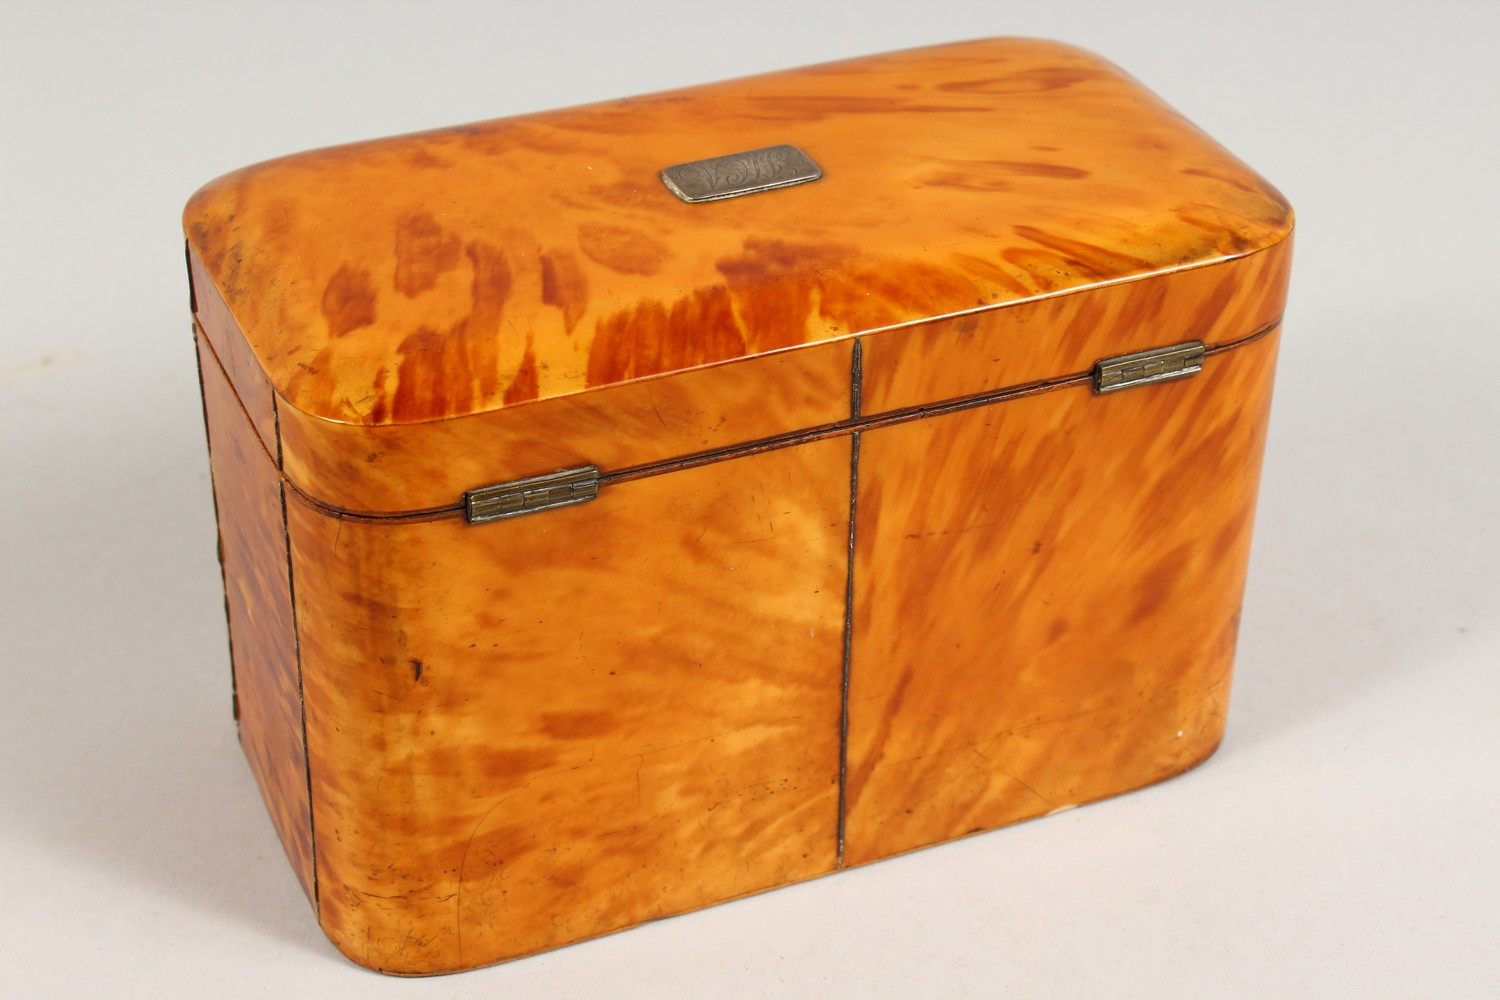 Lot 1431 - A GOOD GEORGE III BLONDE TORTOISESHELL TWIN COMPARTMENT TEA CADDY, with engraved silver plaque. 7ins